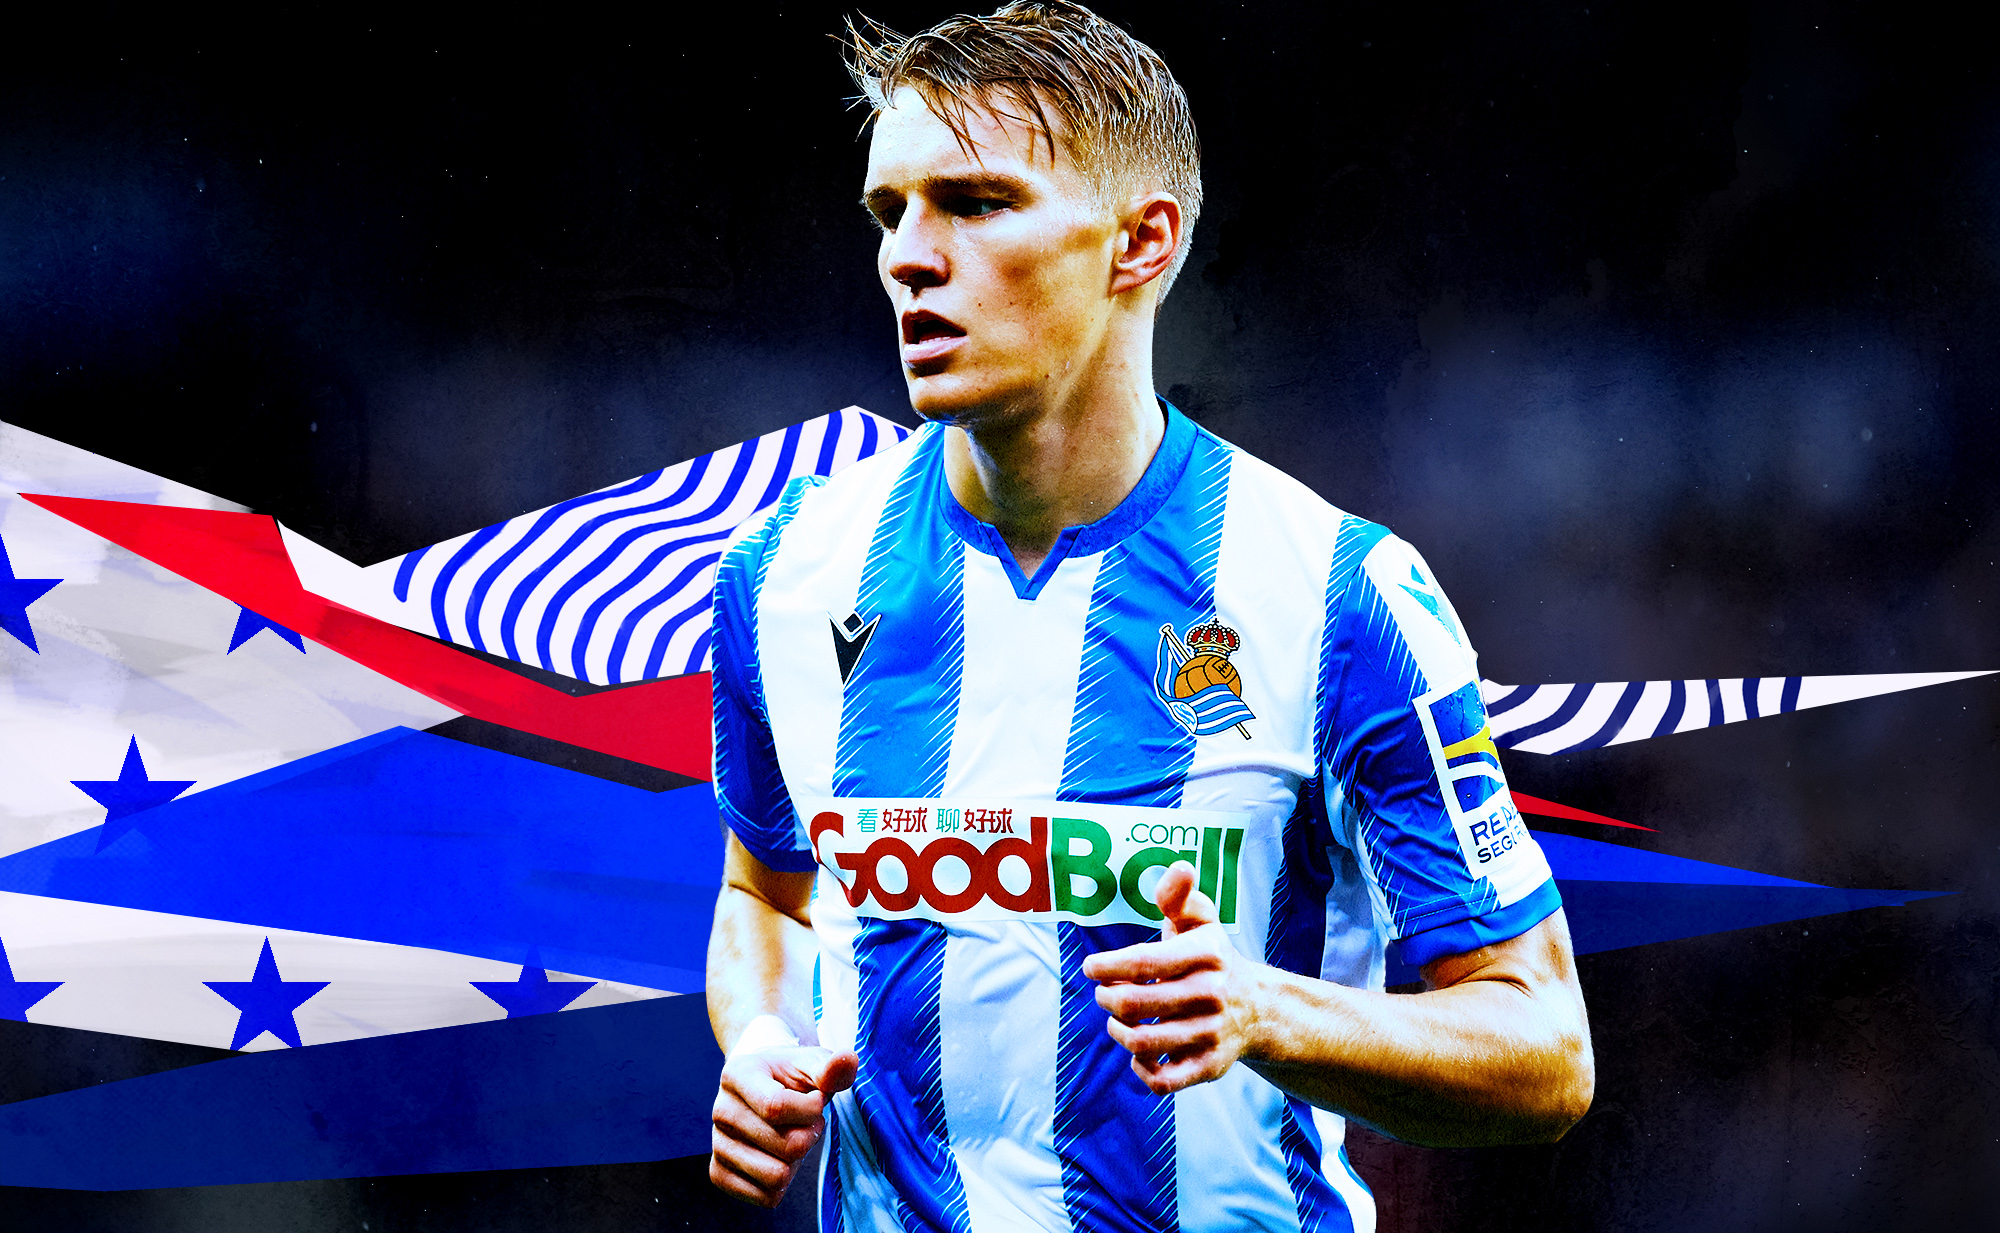 Martin Ødegaard is right on track to become Real Madrid's next Luka Modric